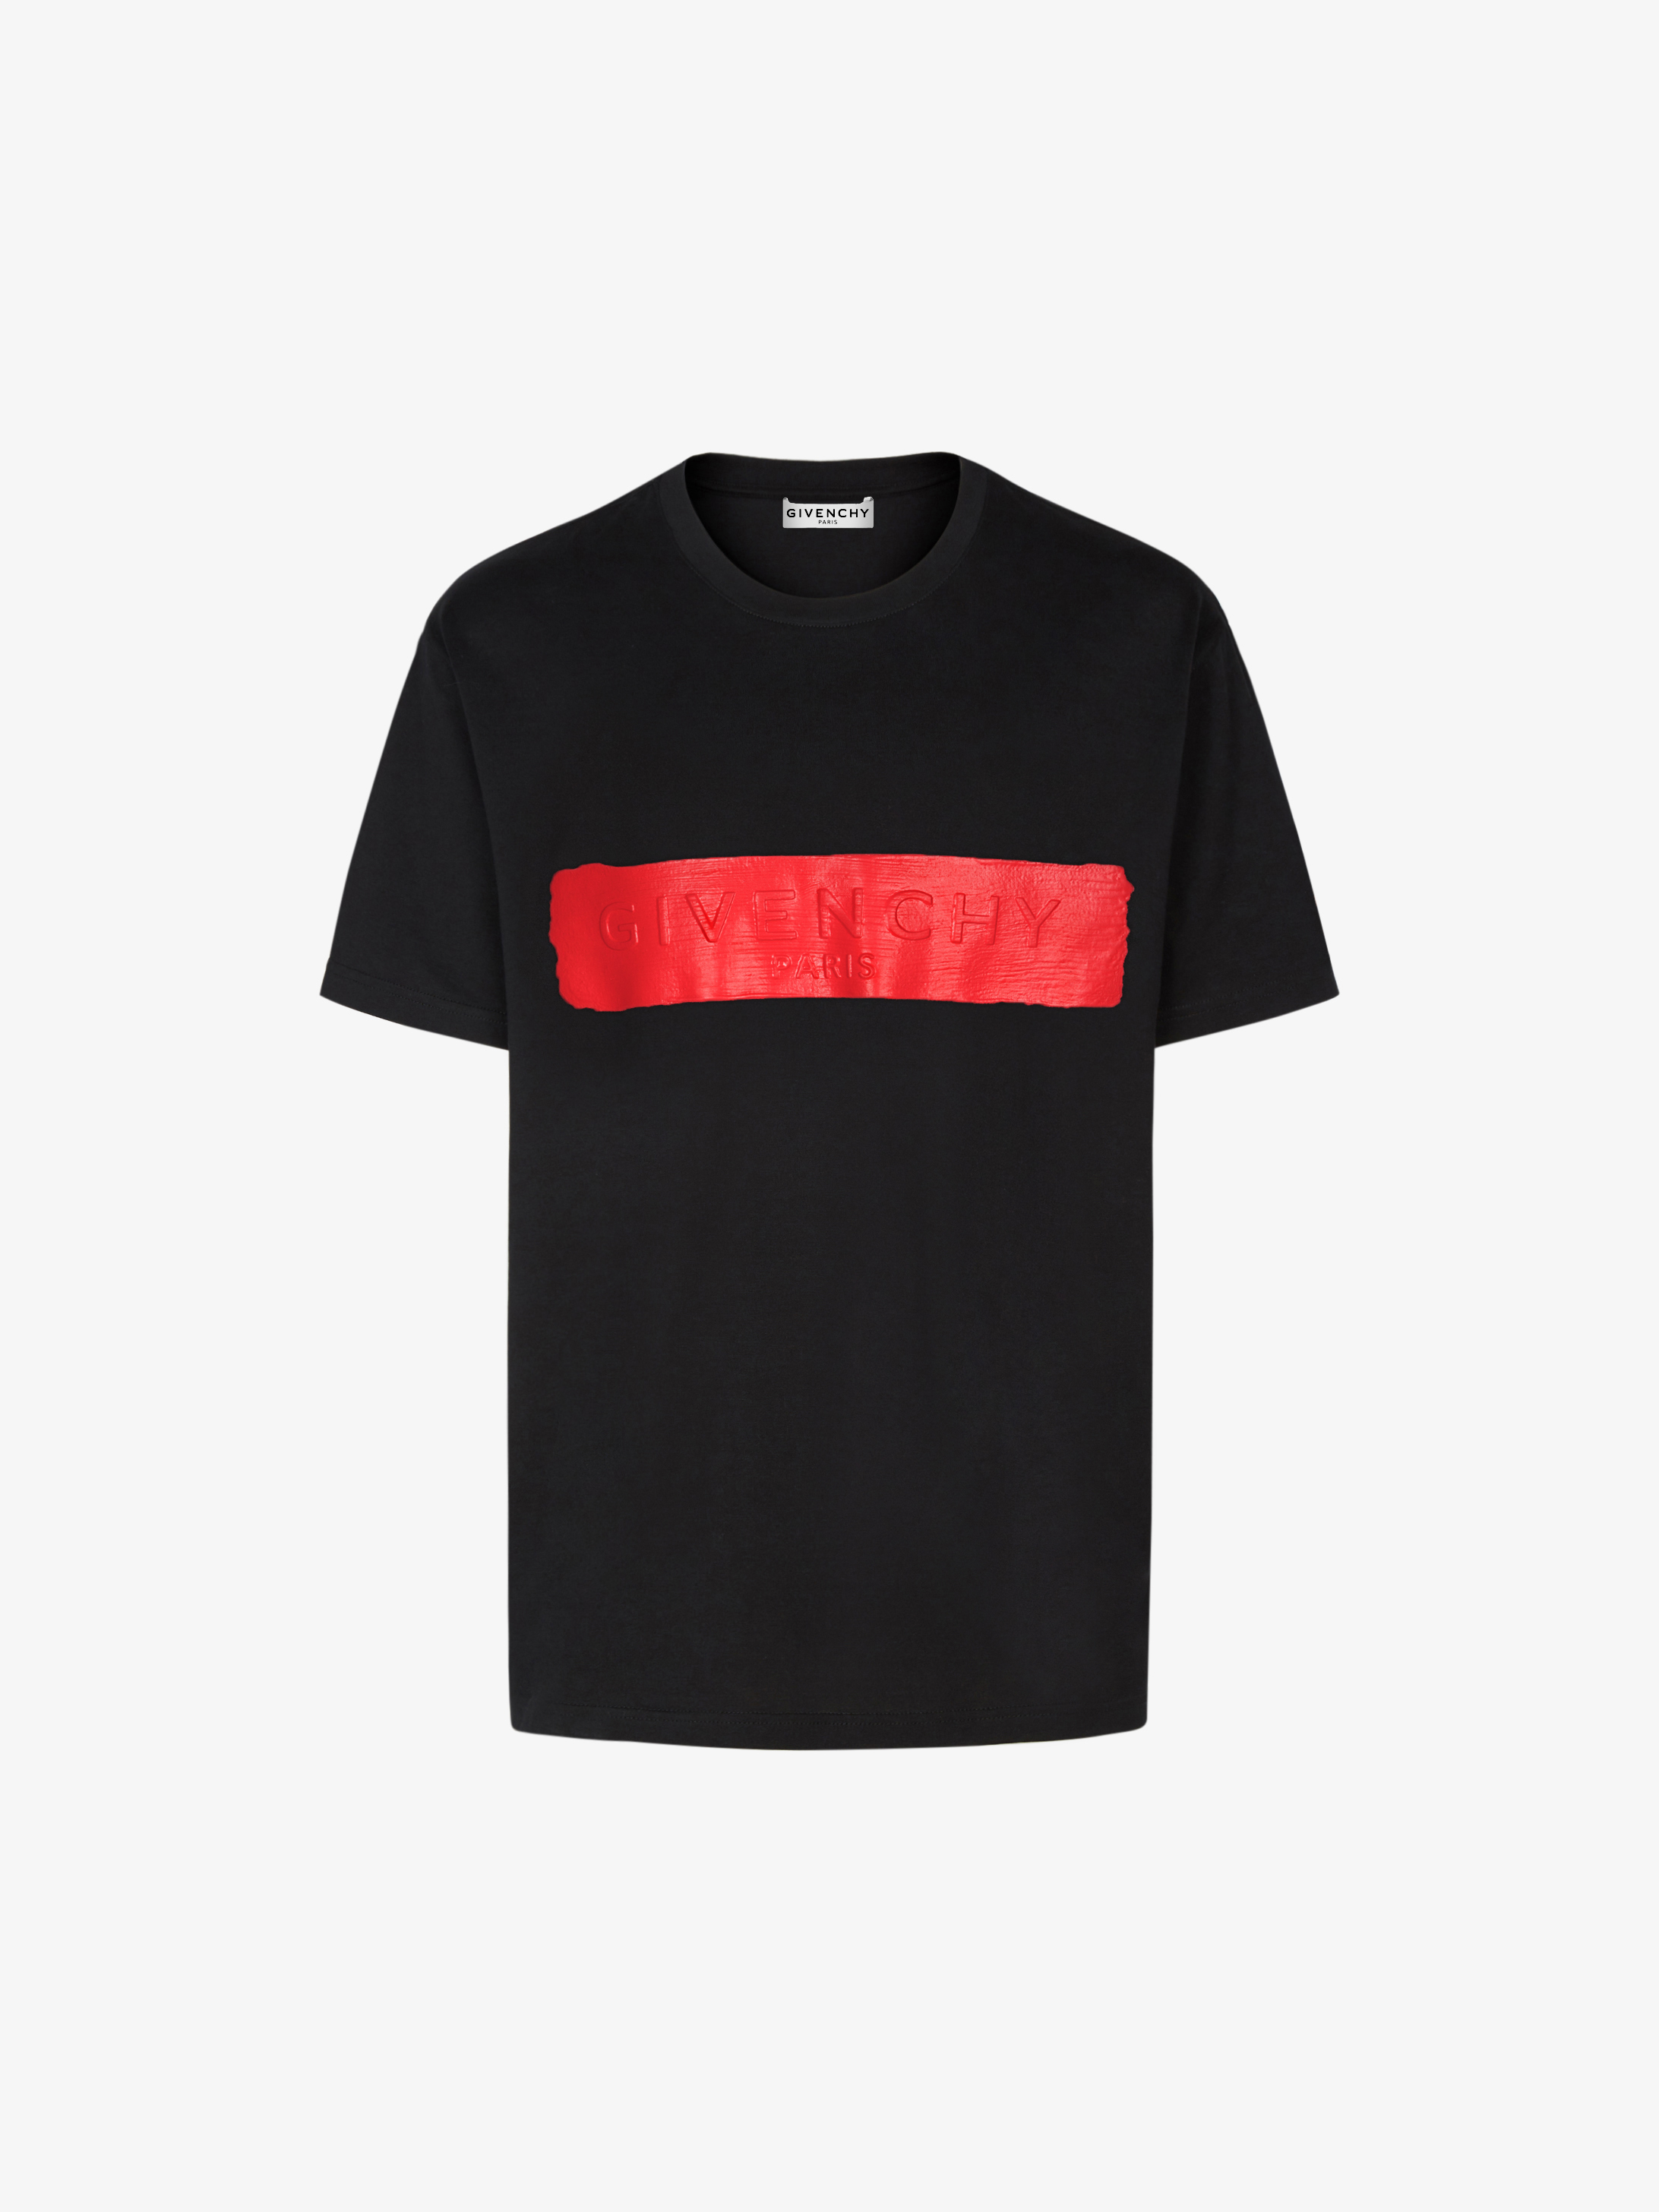 GIVENCHY t-shirt with band